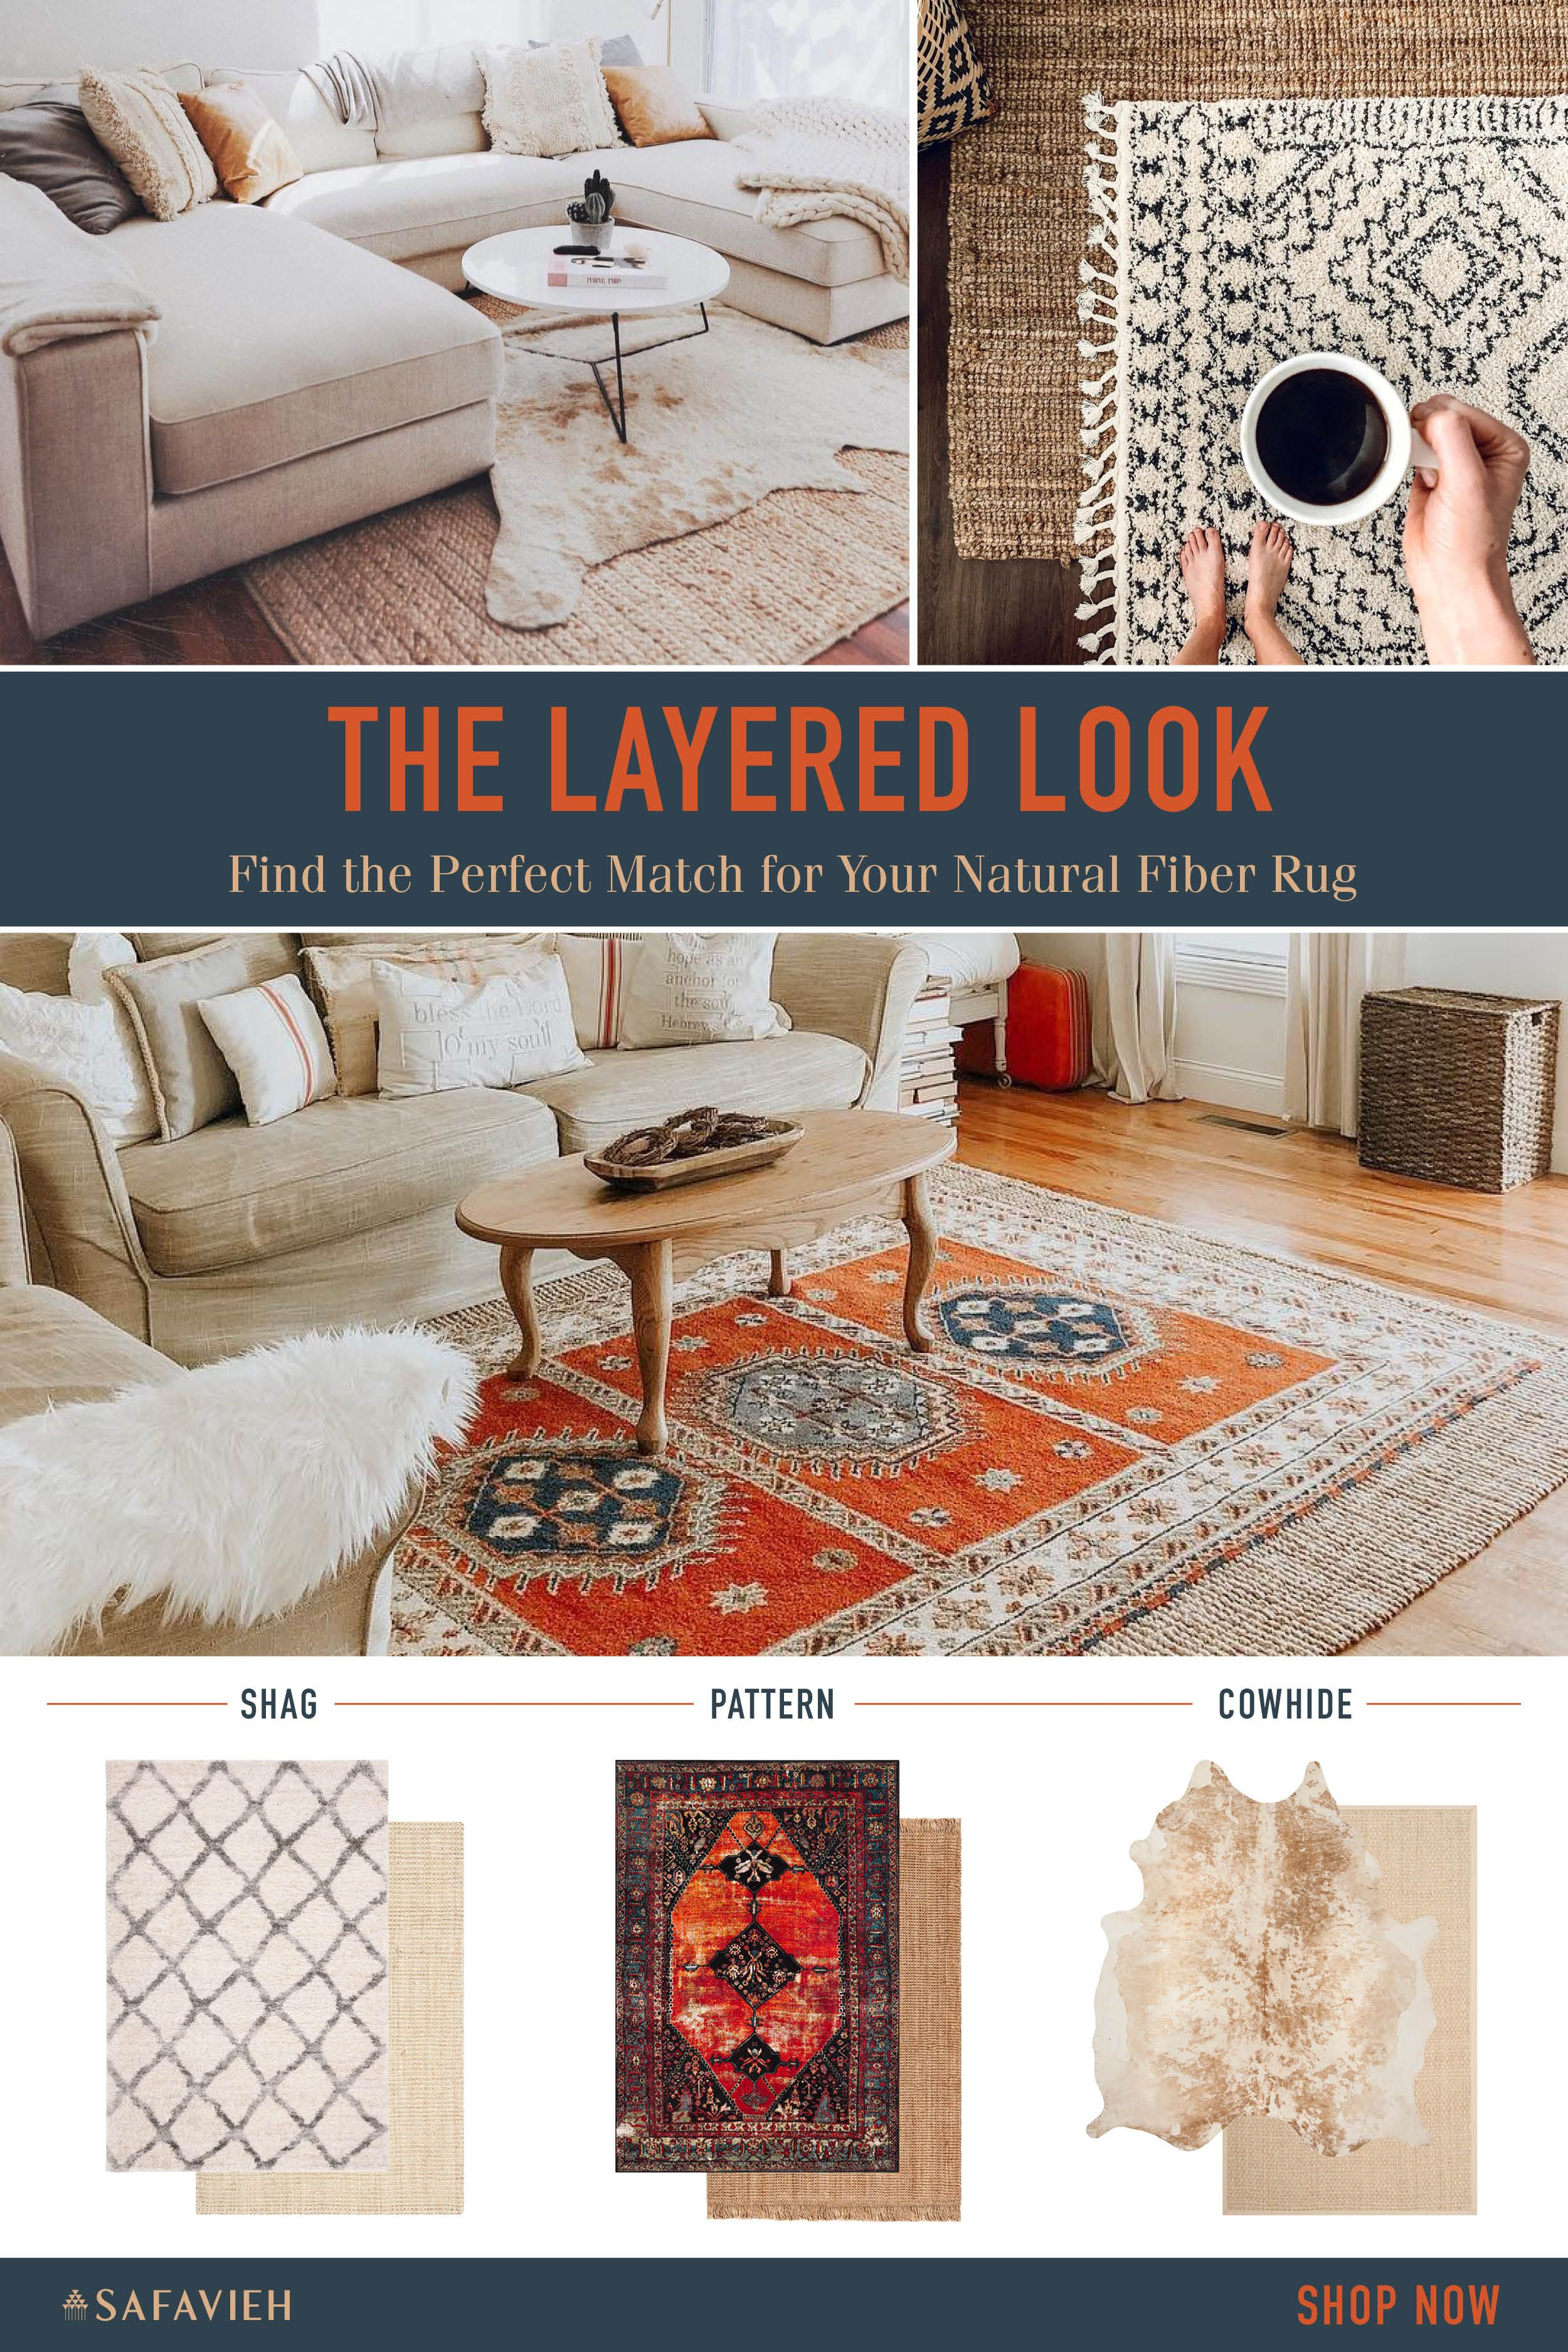 Fall Weather Calls For Layers And We Re Not Just Talking About Sweaters Layer Up Your Area Rugs Layered Rugs Living Room Layered Rugs Living Room Area Rugs